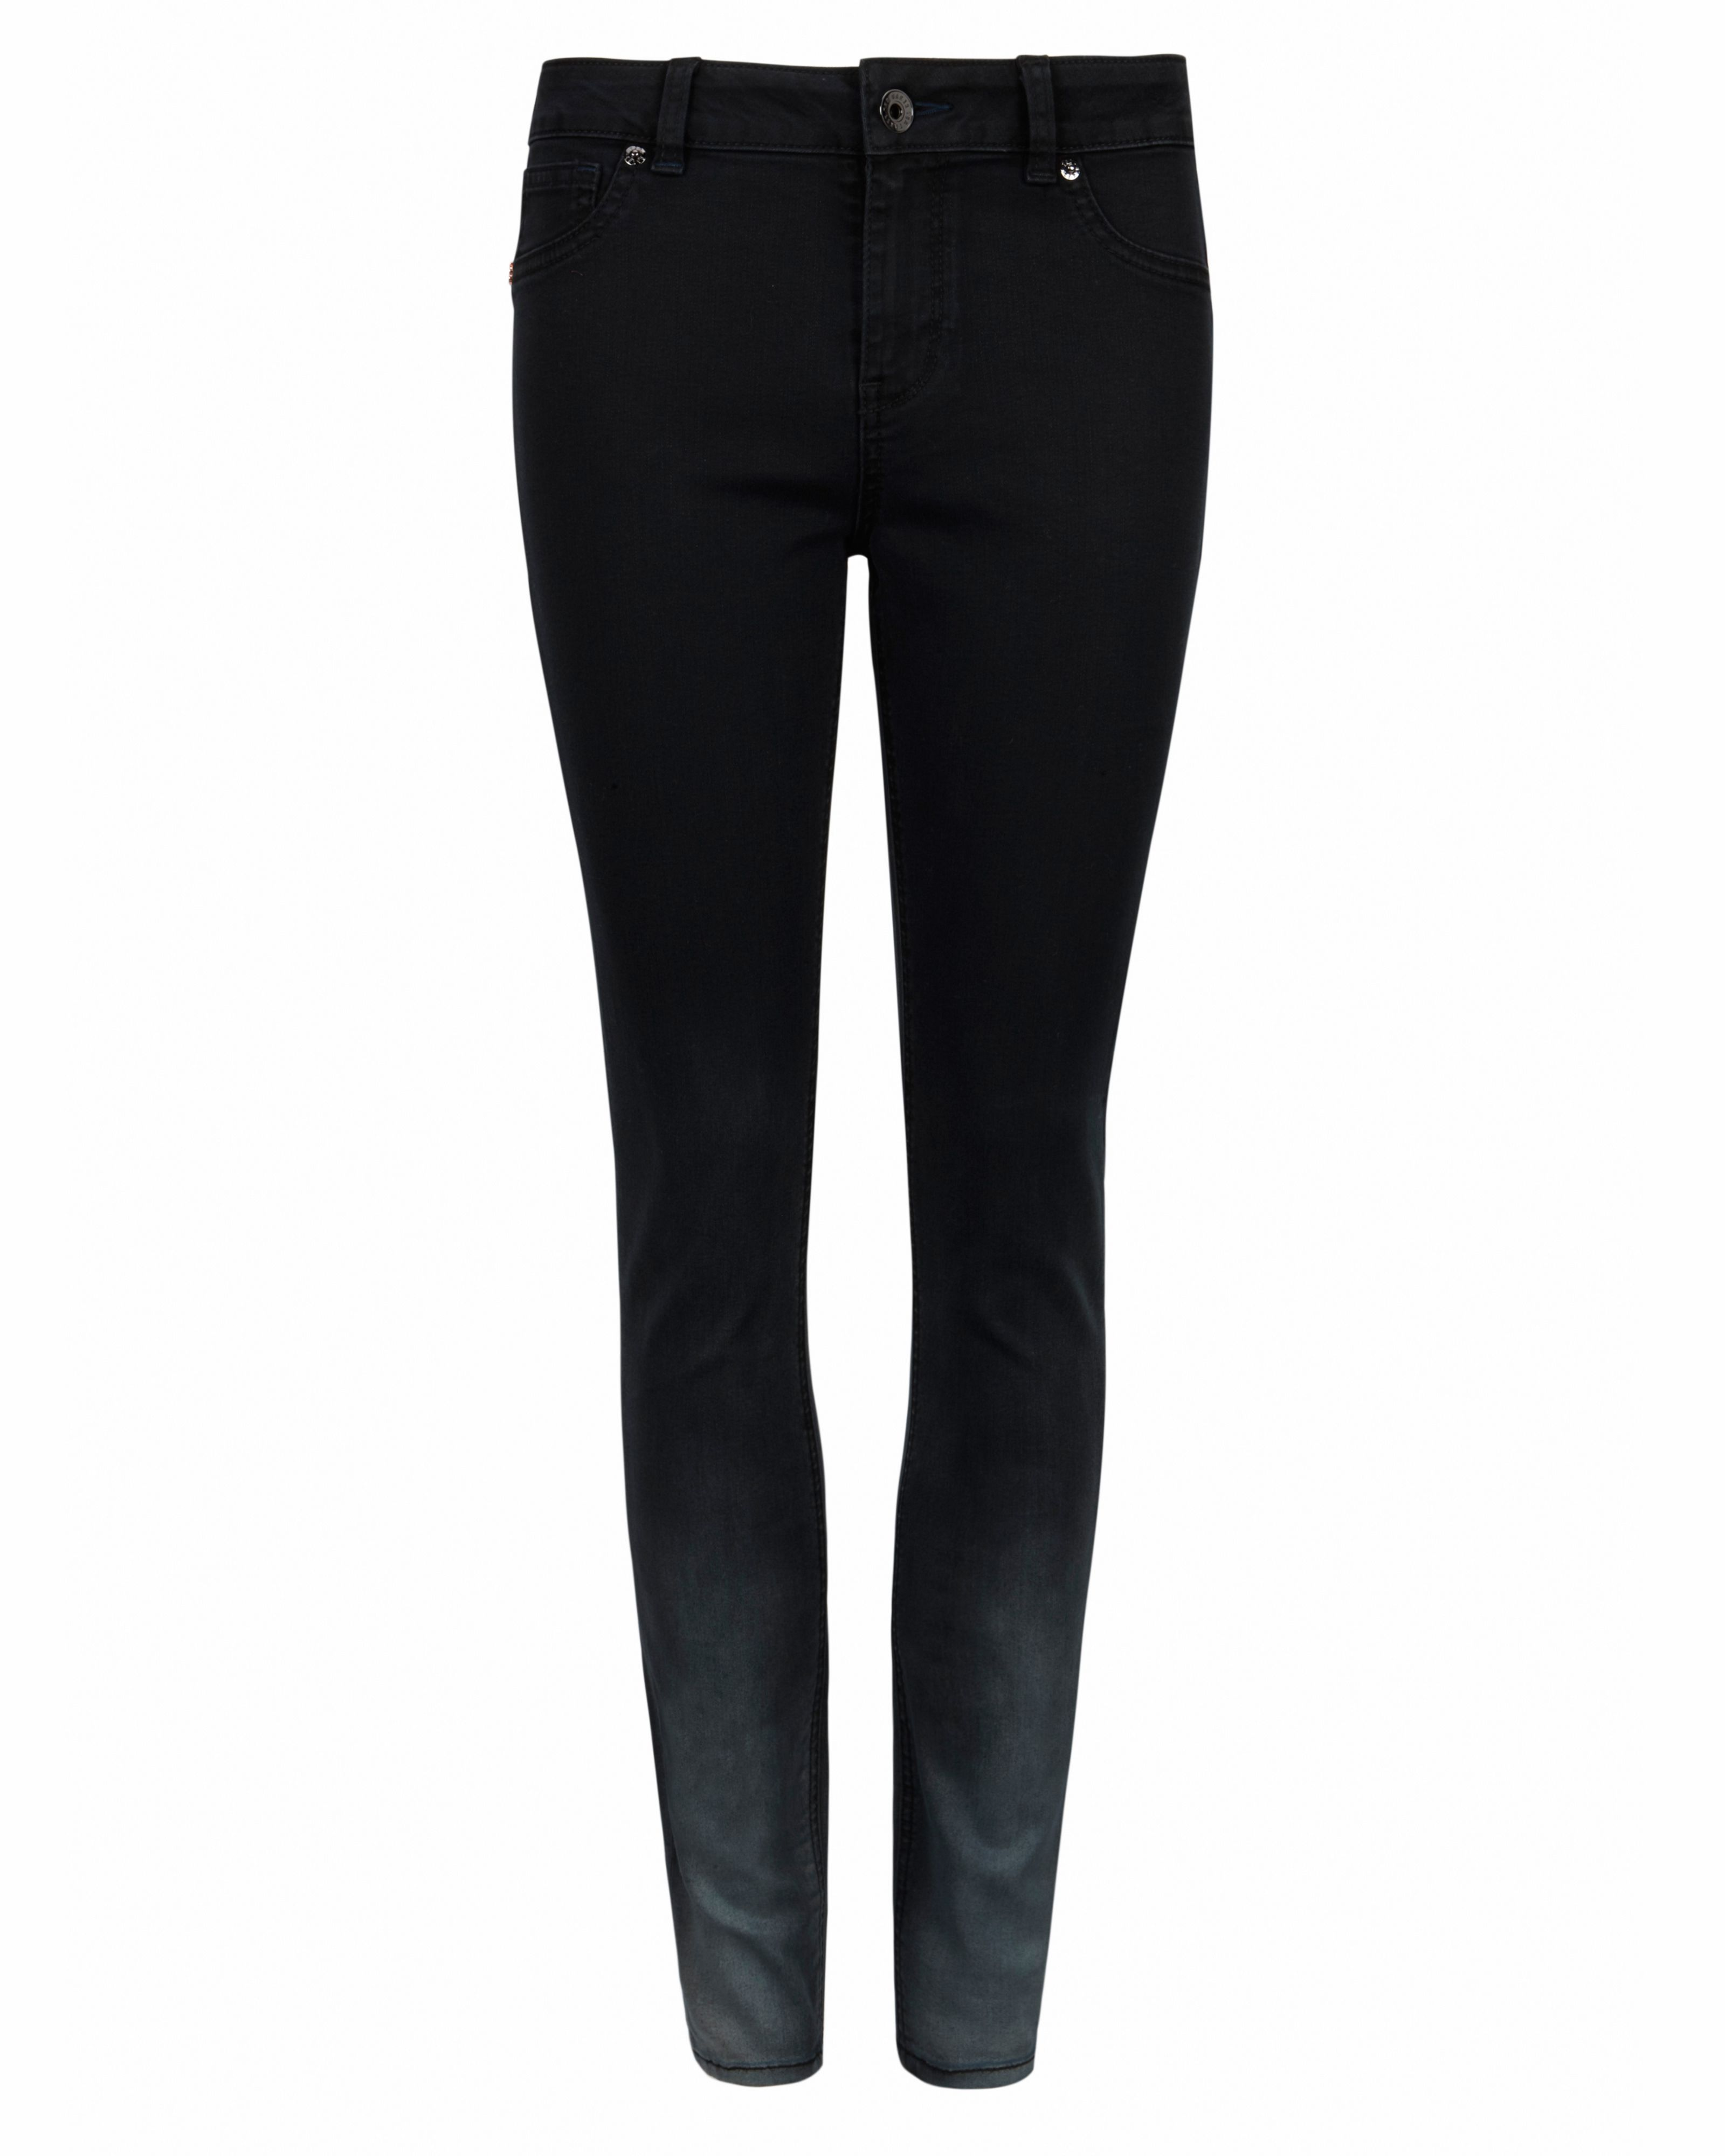 Ted Baker Ombray Ombre Skinny Jeans, Black